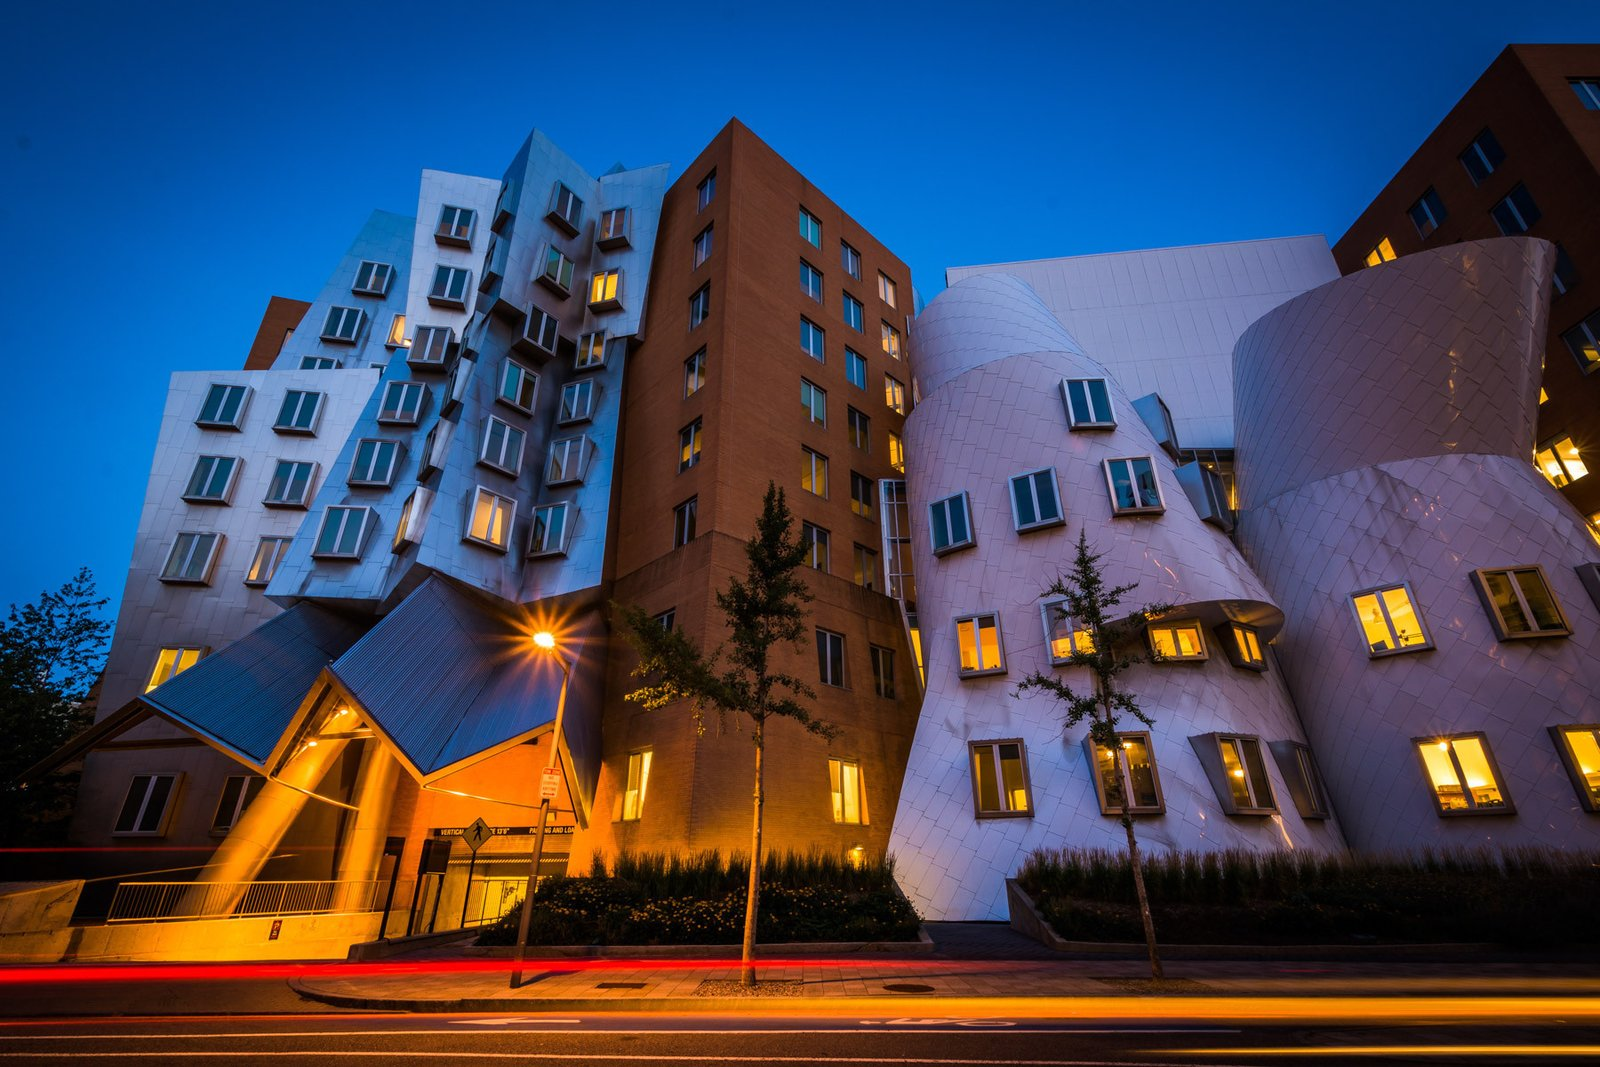 In a  glowing appraisal of Gehry's Stata Center, Boston Globe architecture columnist Robert Campbell wrote:  Photo 6 of 14 in 13 Iconic Buildings Designed by Frank Gehry